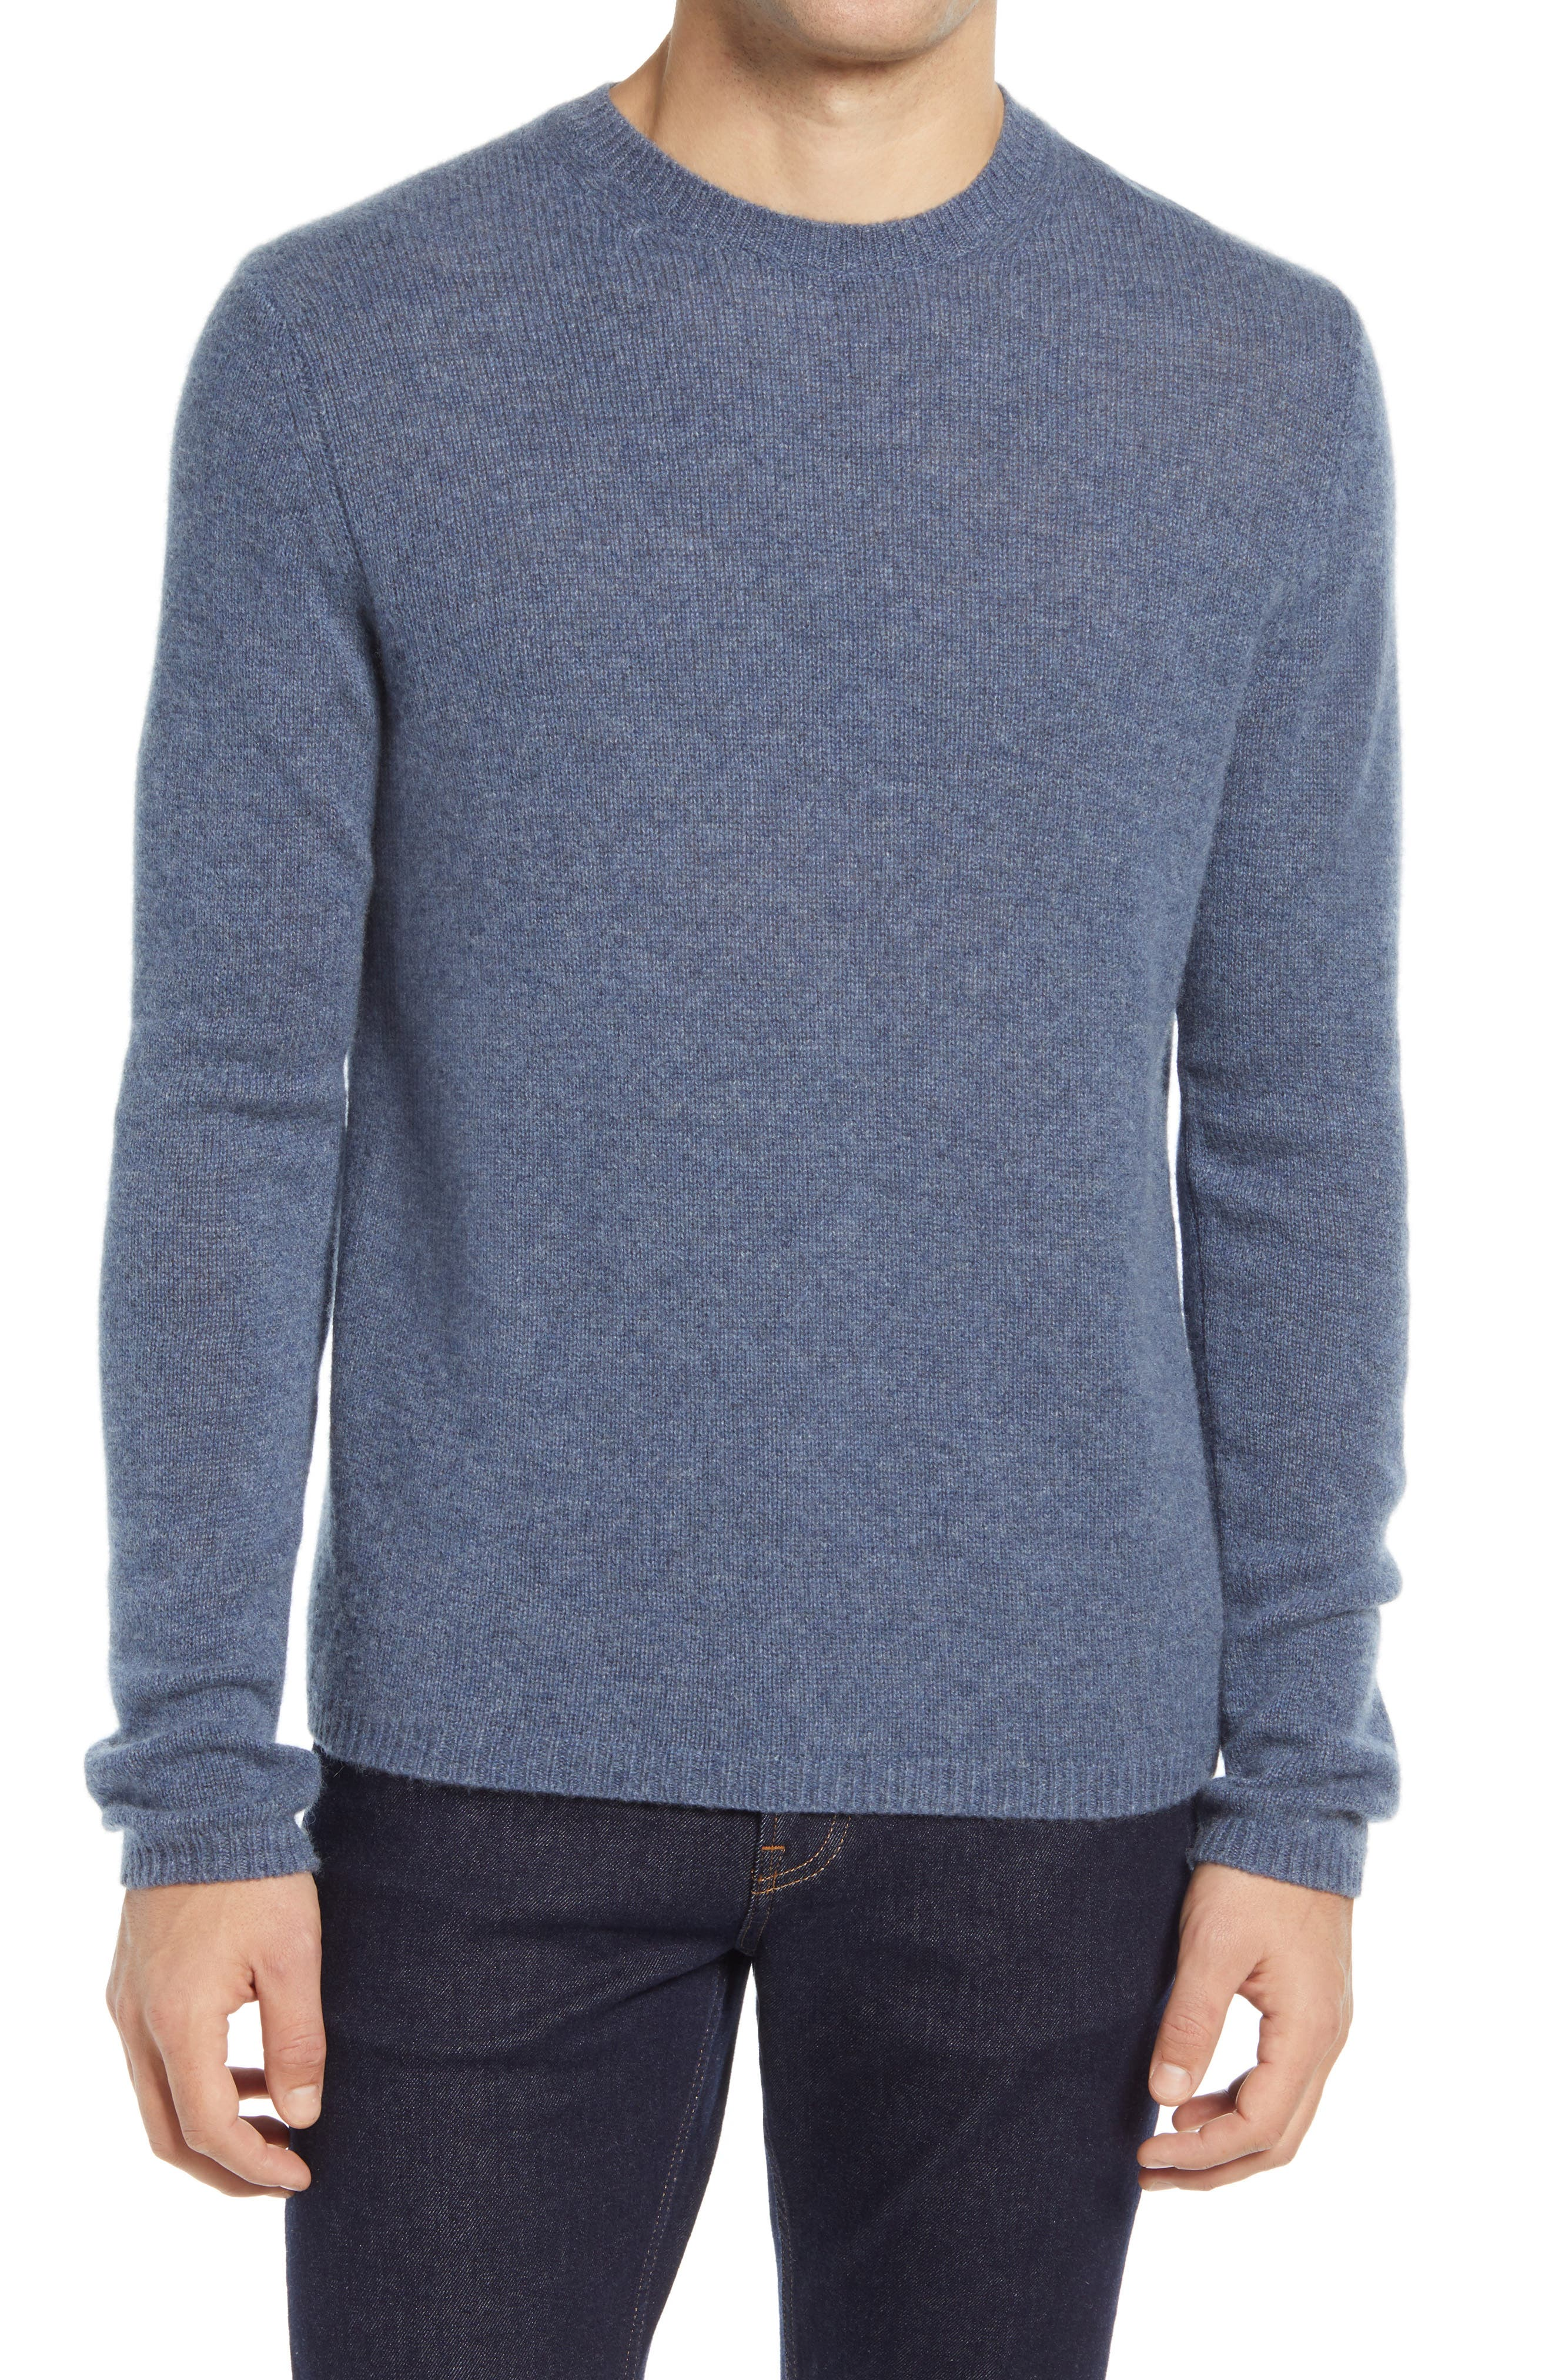 Soft, breathable cashmere furthers the easy-to-wear appeal of a sweater knit with a relaxed fit for layering or wearing on its own. Style Name: Vince Men\\\'S Crewneck Cashmere Sweater. Style Number: 6146893 2. Available in stores.